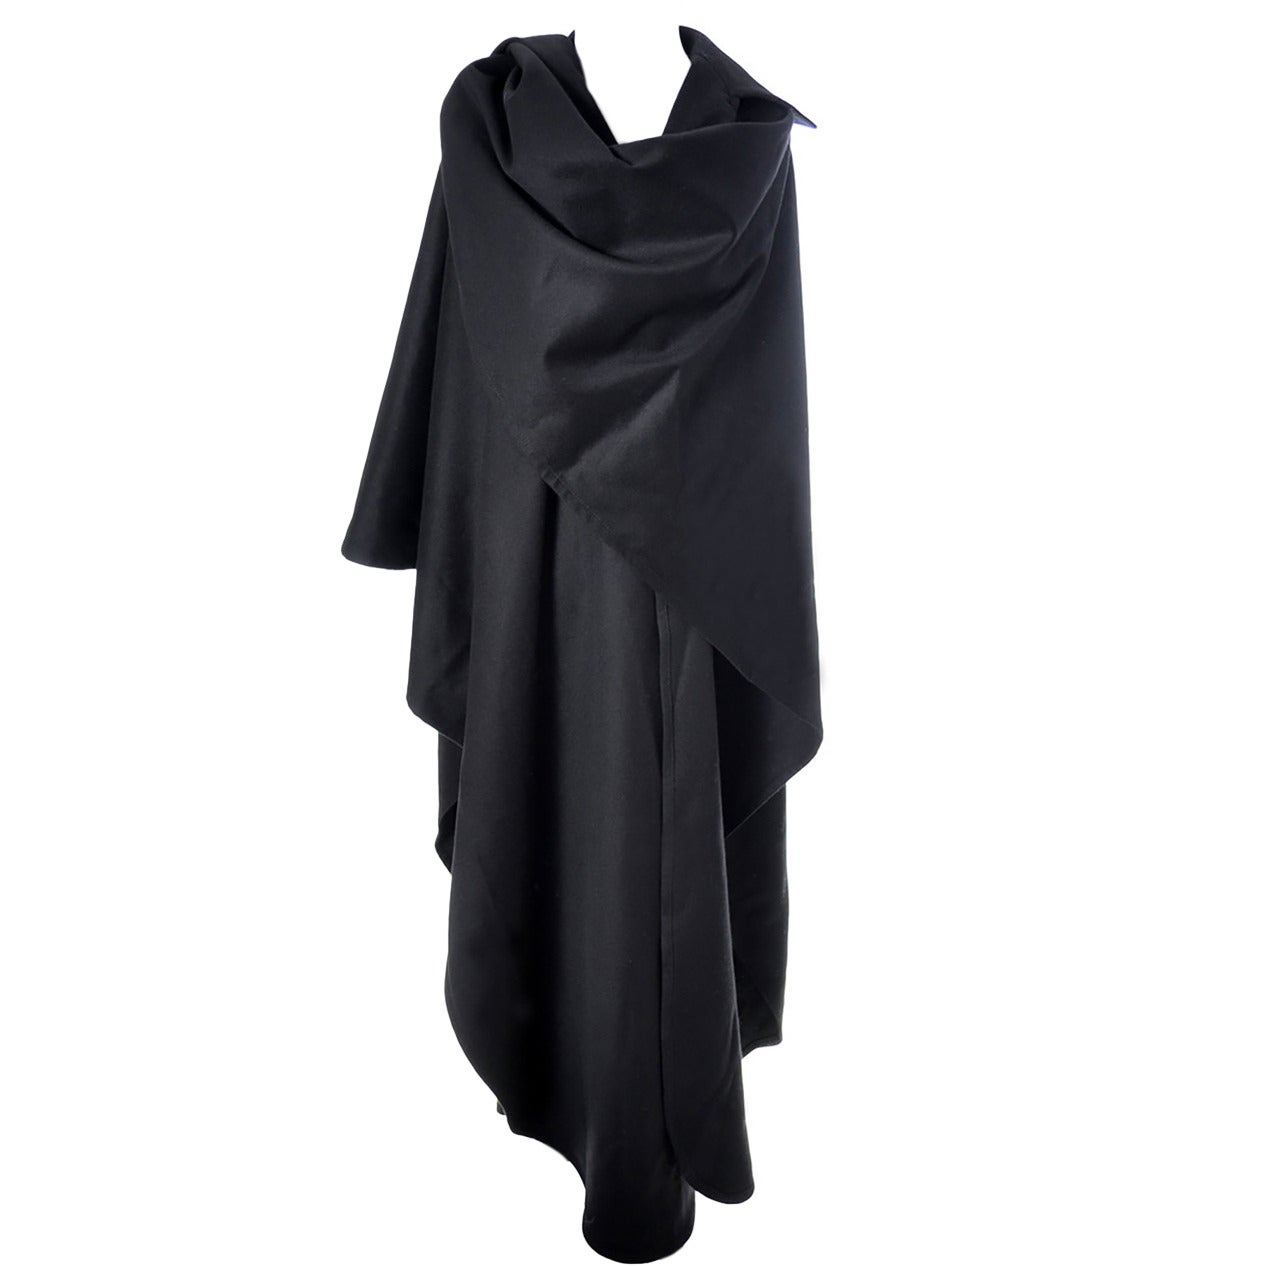 Givenchy Vintage Cape Wrap Wool Bergdorf Goodman New York 1970s 1